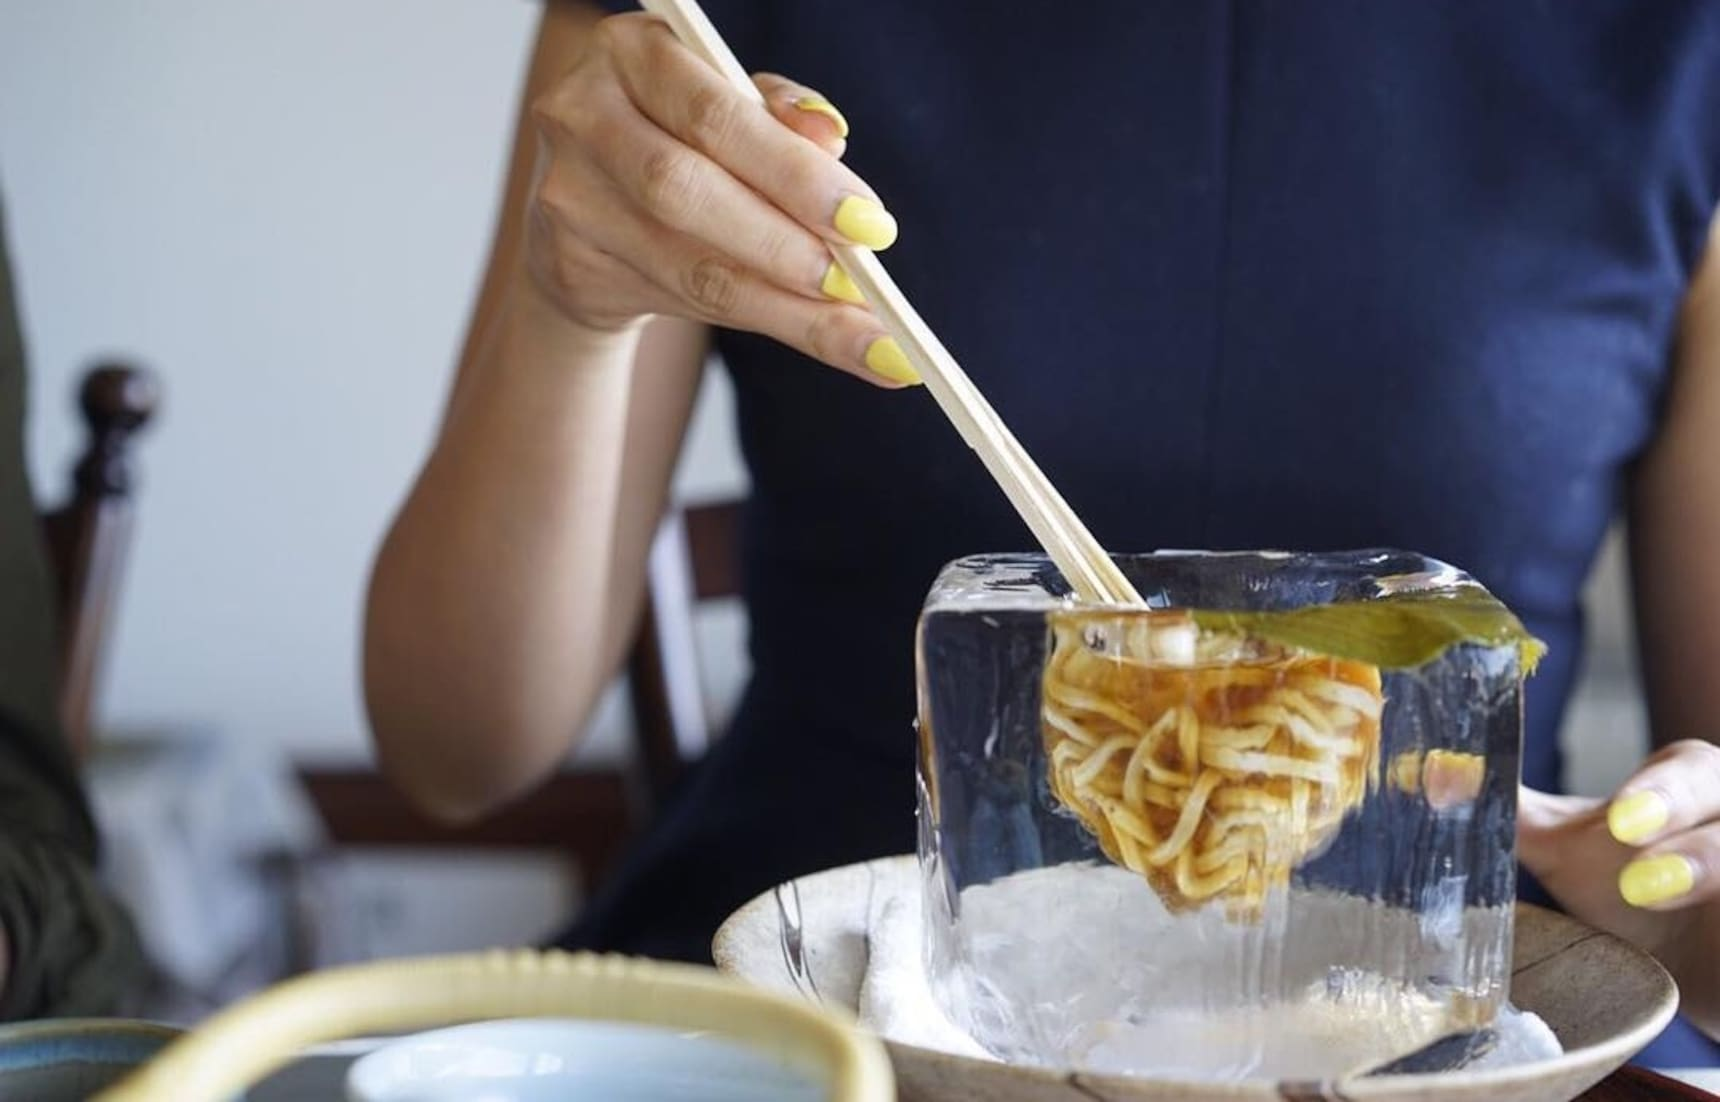 No Need to Wait for These Noodles to Cool Down